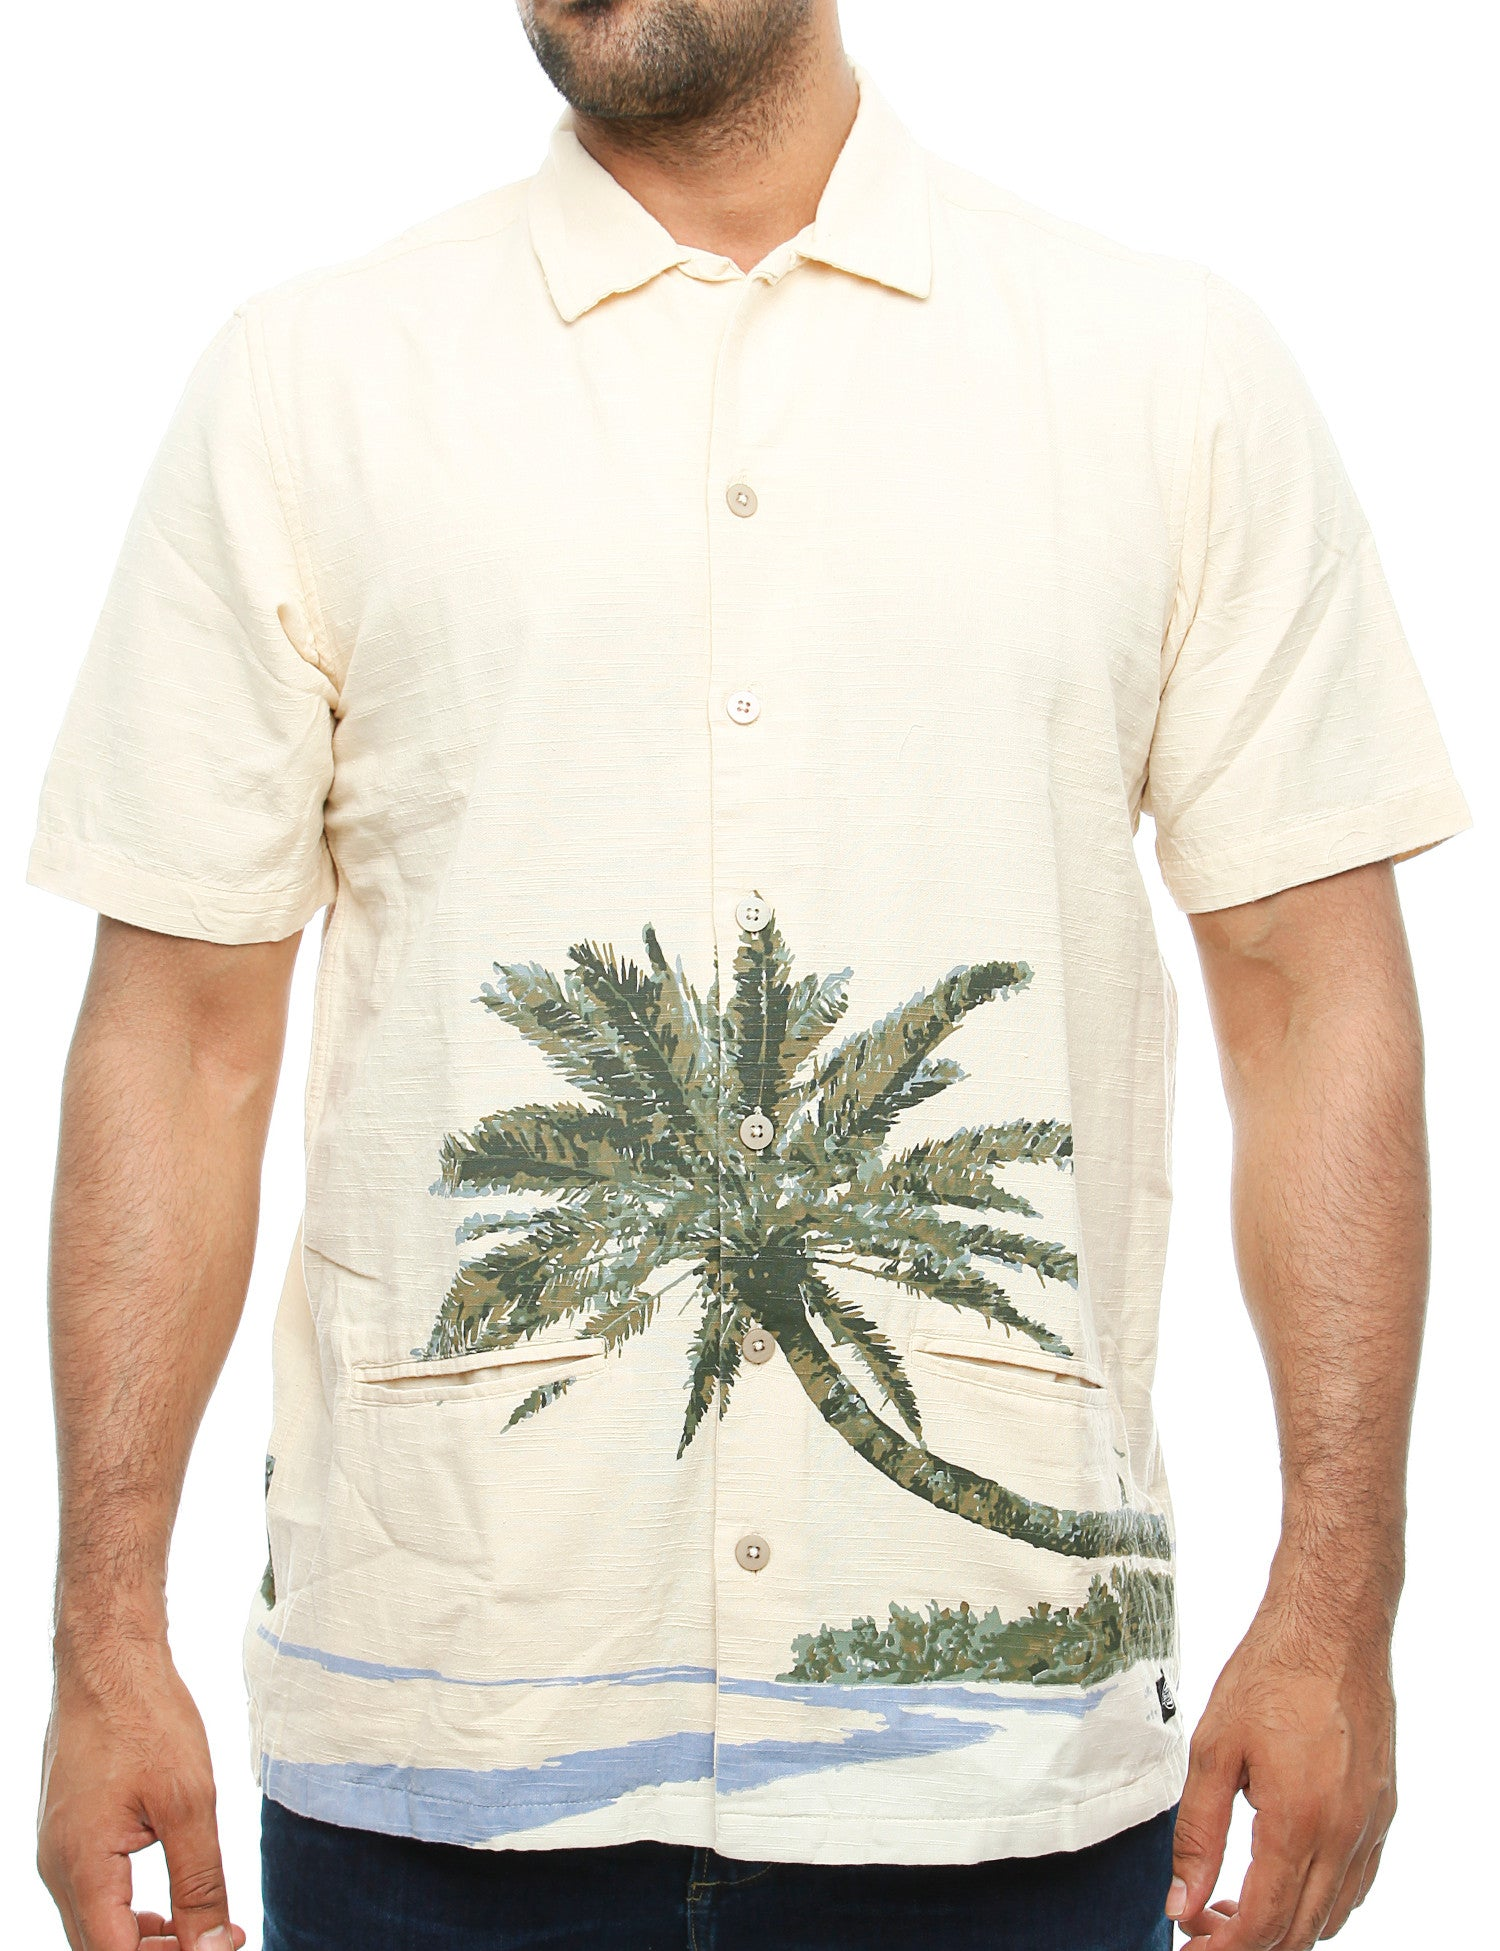 Dickies Hawaiian Gardens Shirt 05 200215 Beige